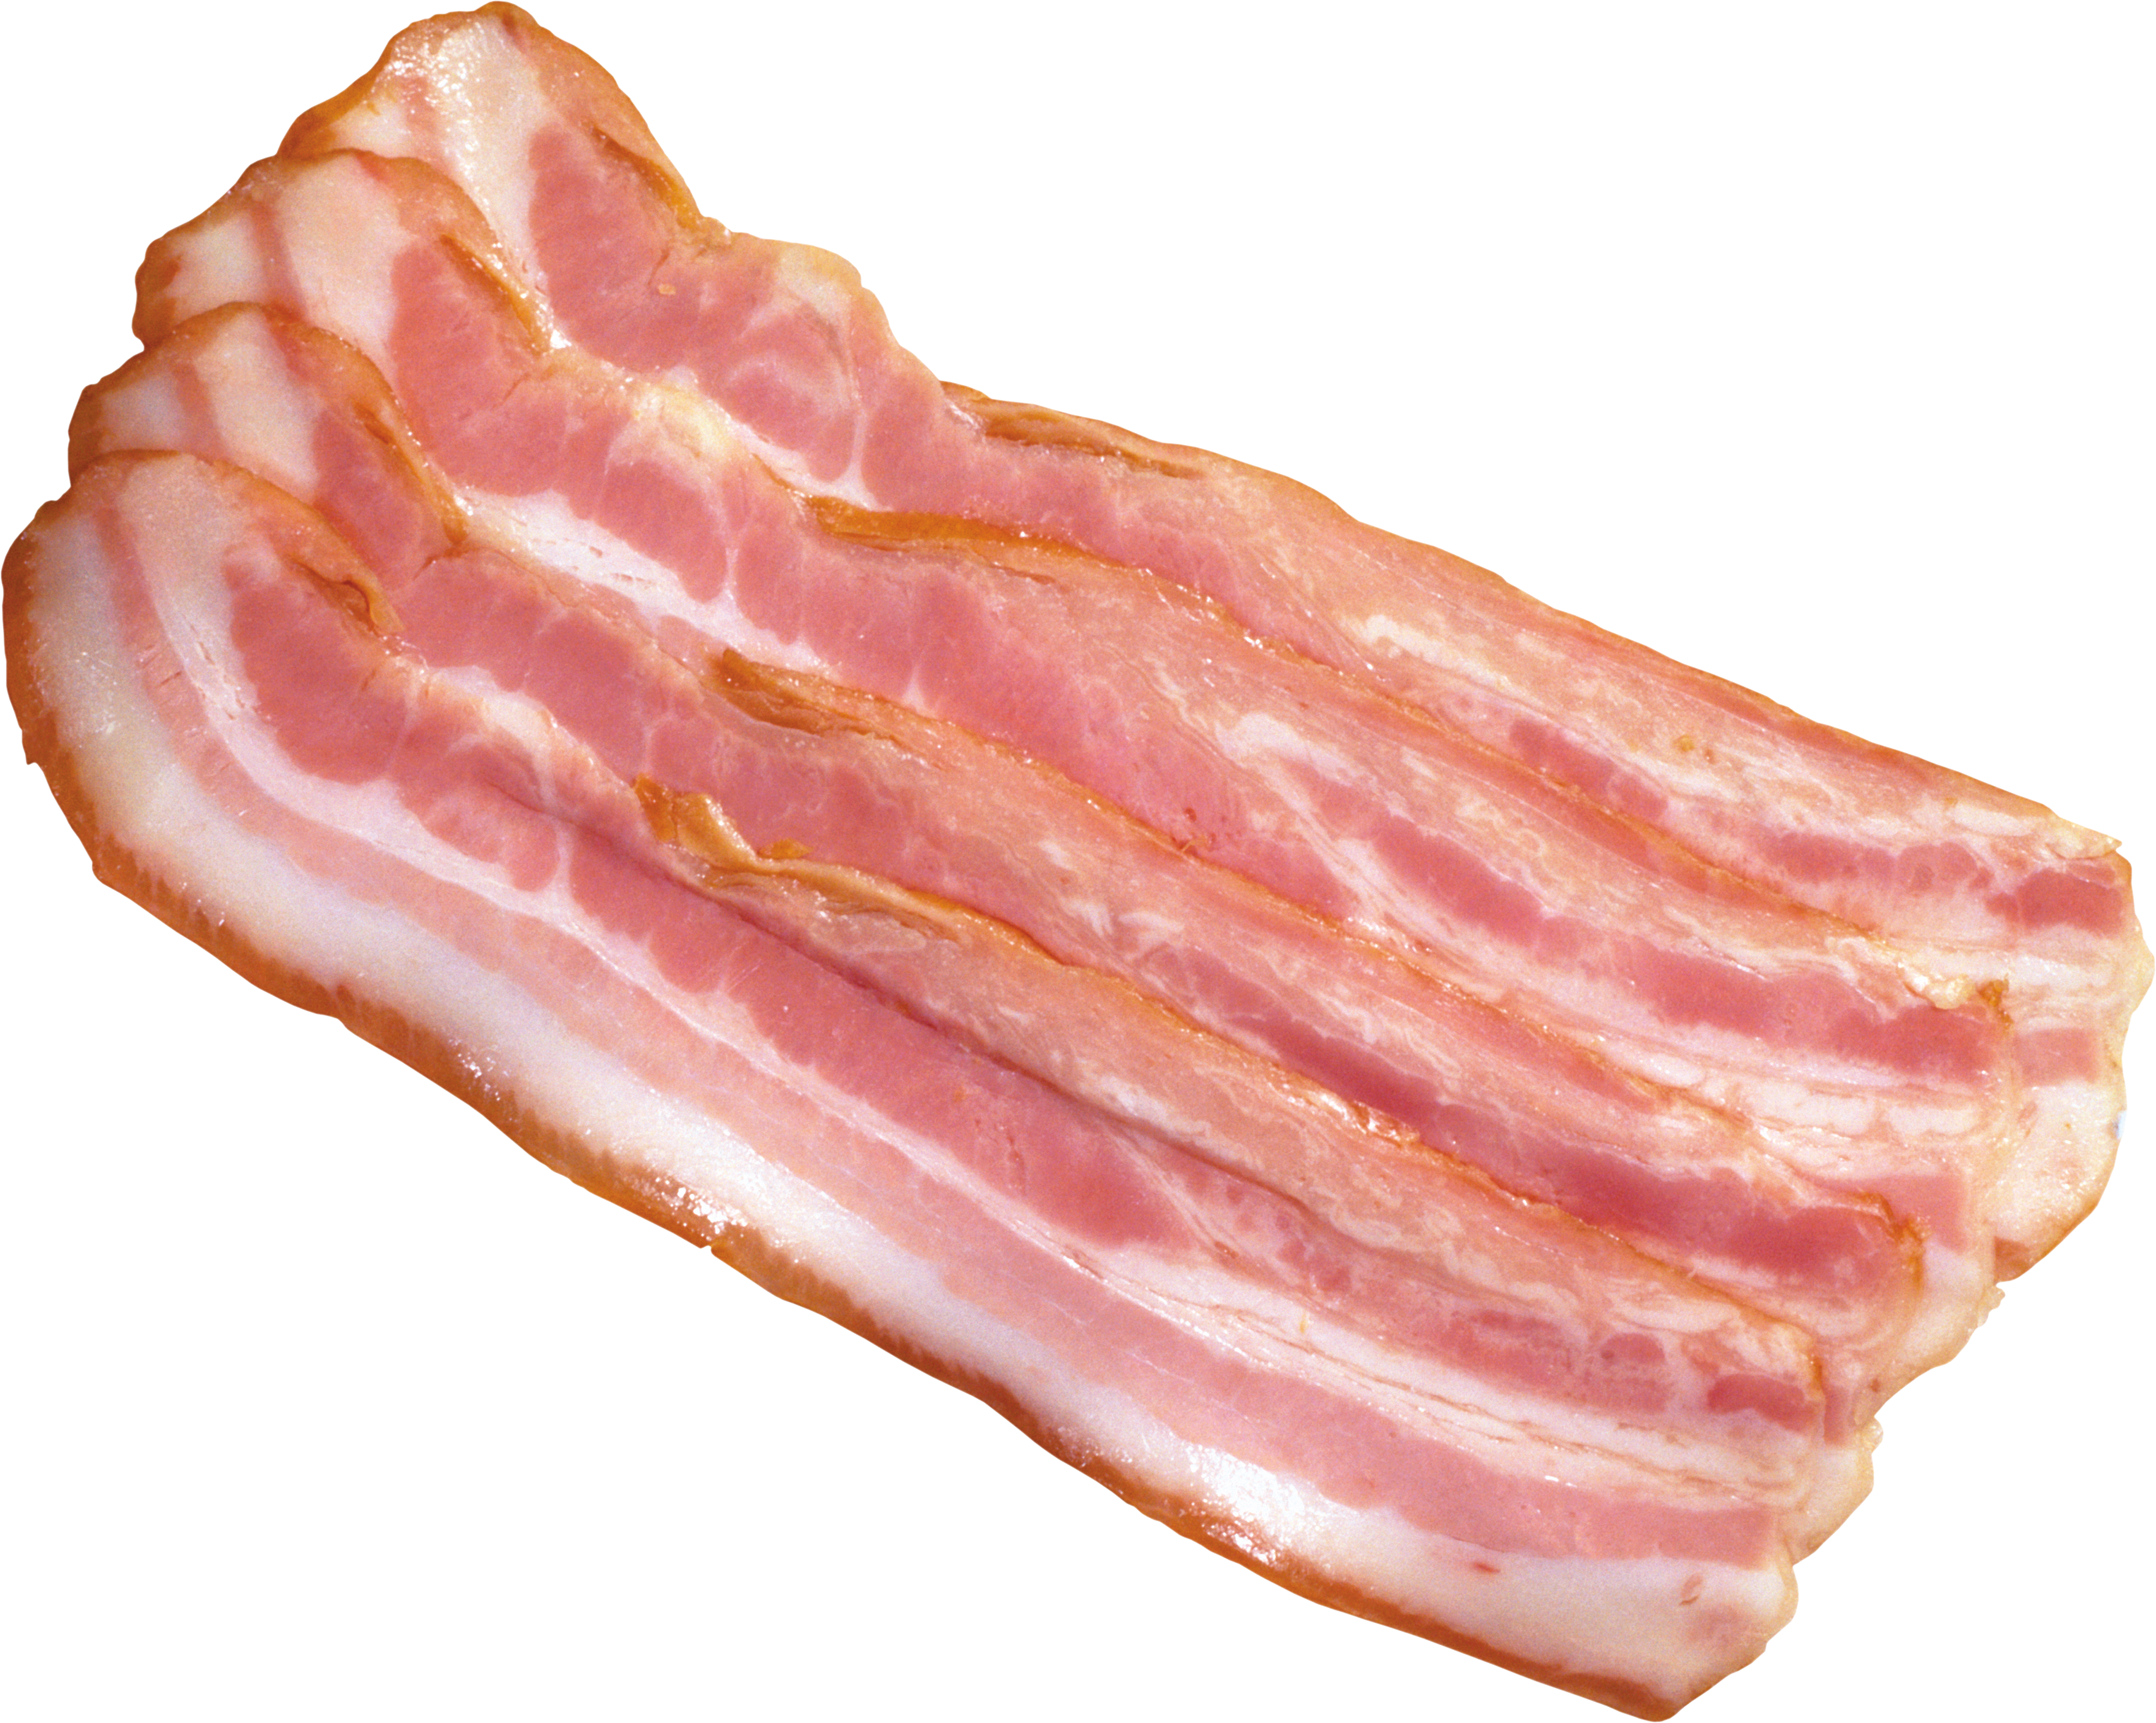 Free Bacon Png Hd - Bacon Png   Bacon Hd Png, Transparent background PNG HD thumbnail